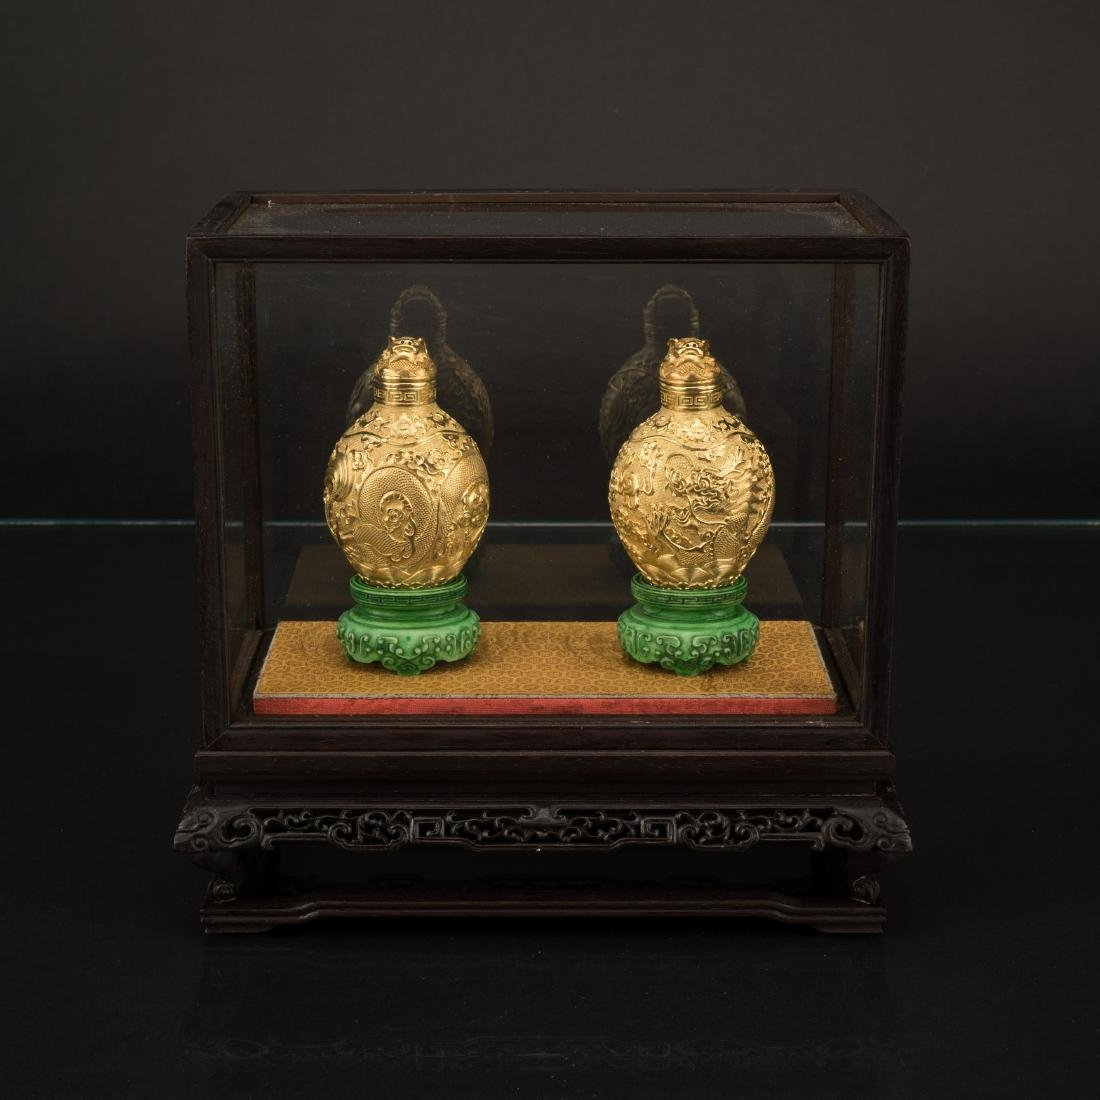 PAIR OF SOLID GOLD SNUFF BOTTLES WITH DISPLAY CASE